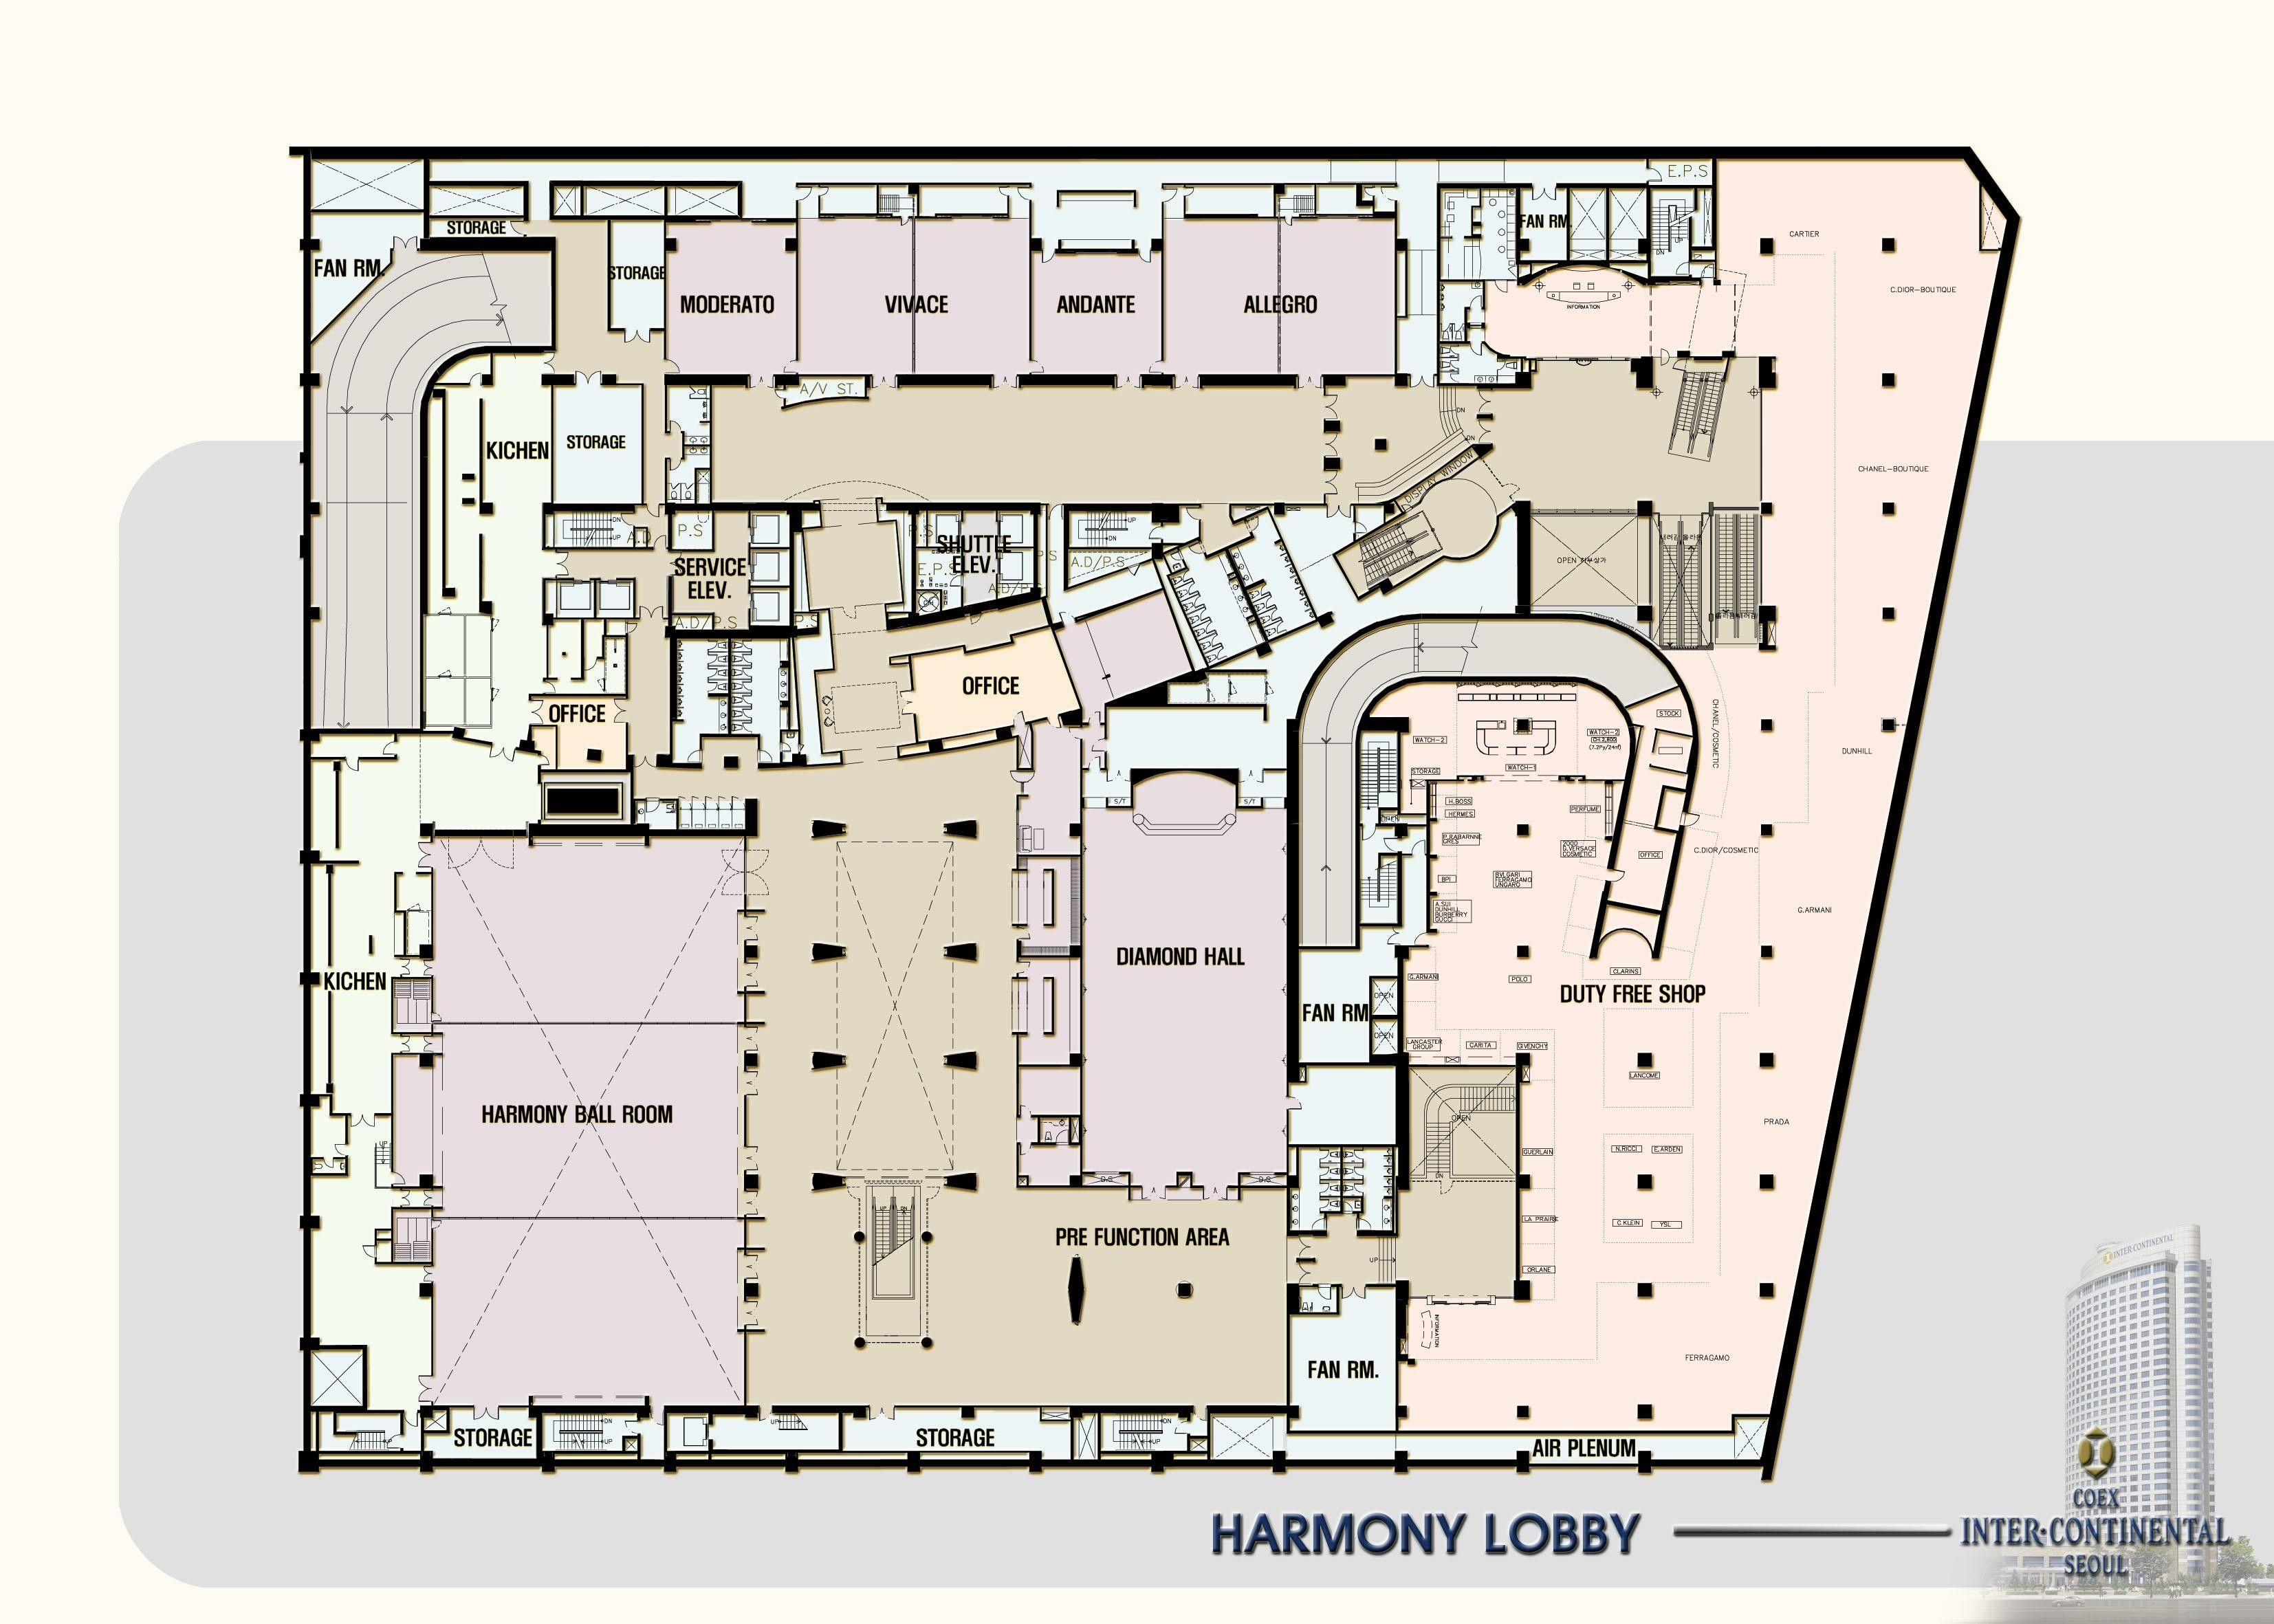 Hotel lobby floor plan google search hotel design for Floor plan search